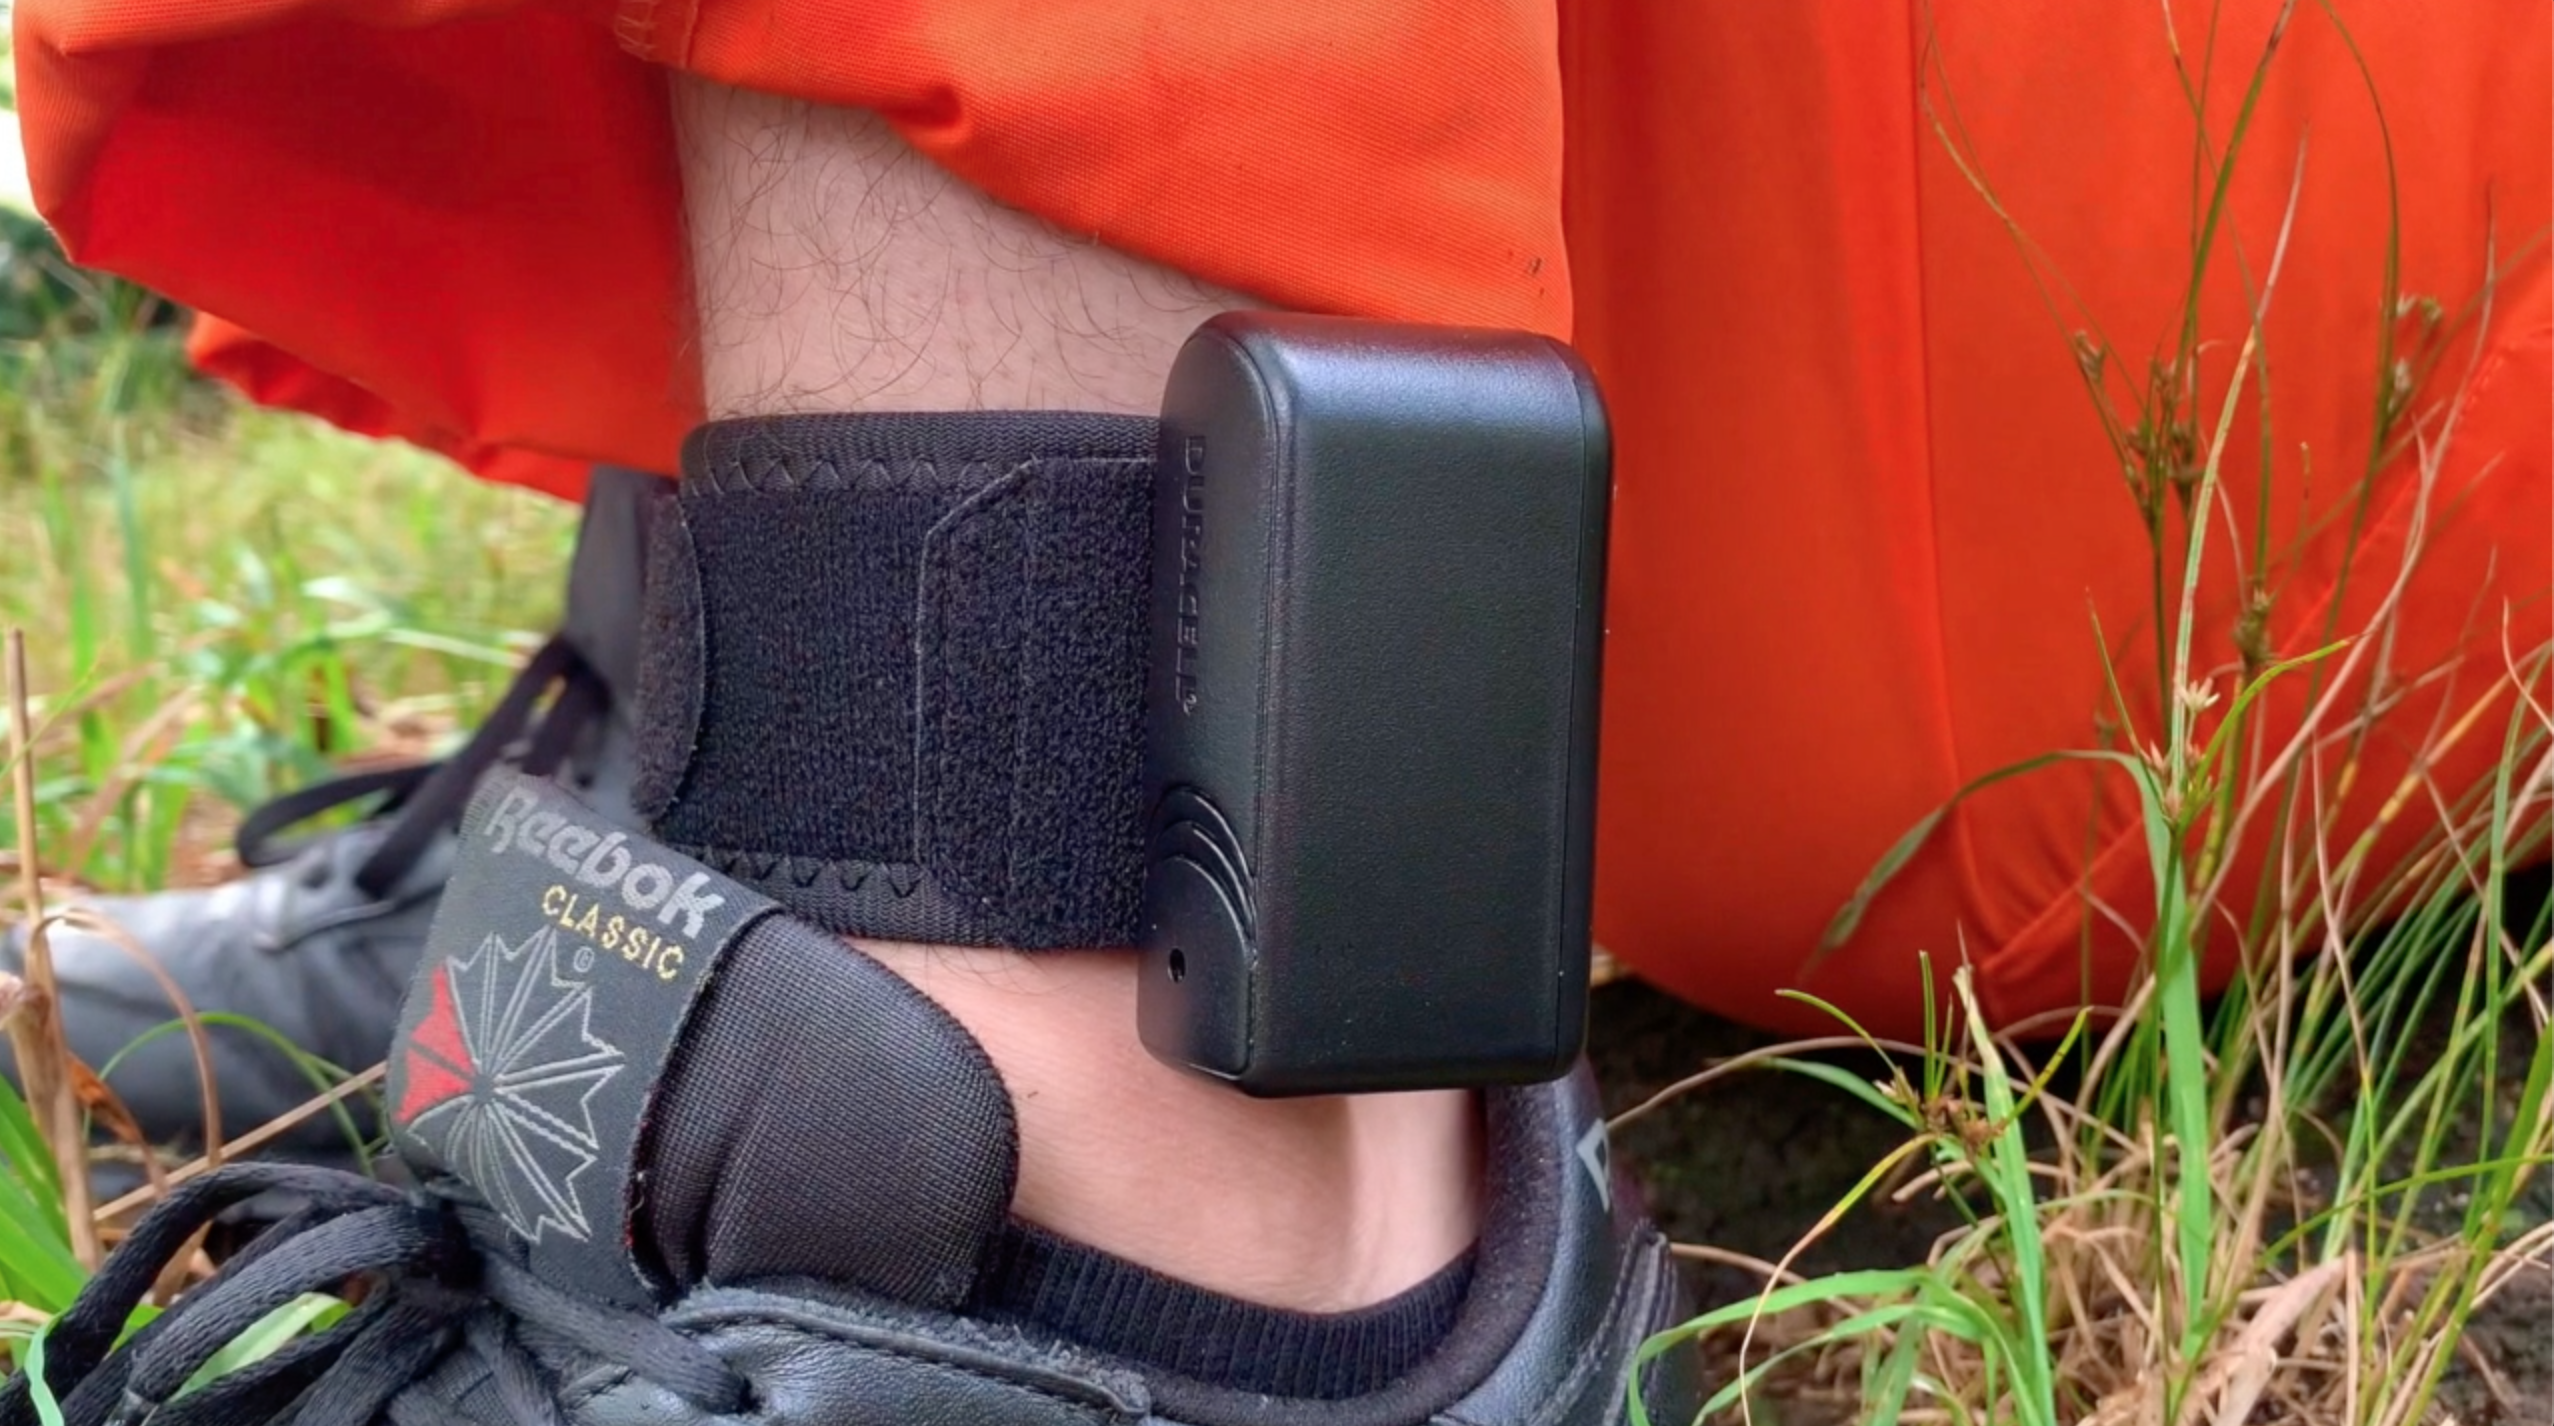 Close up of the black ankle bracelet on the man in the orange jumpsuit